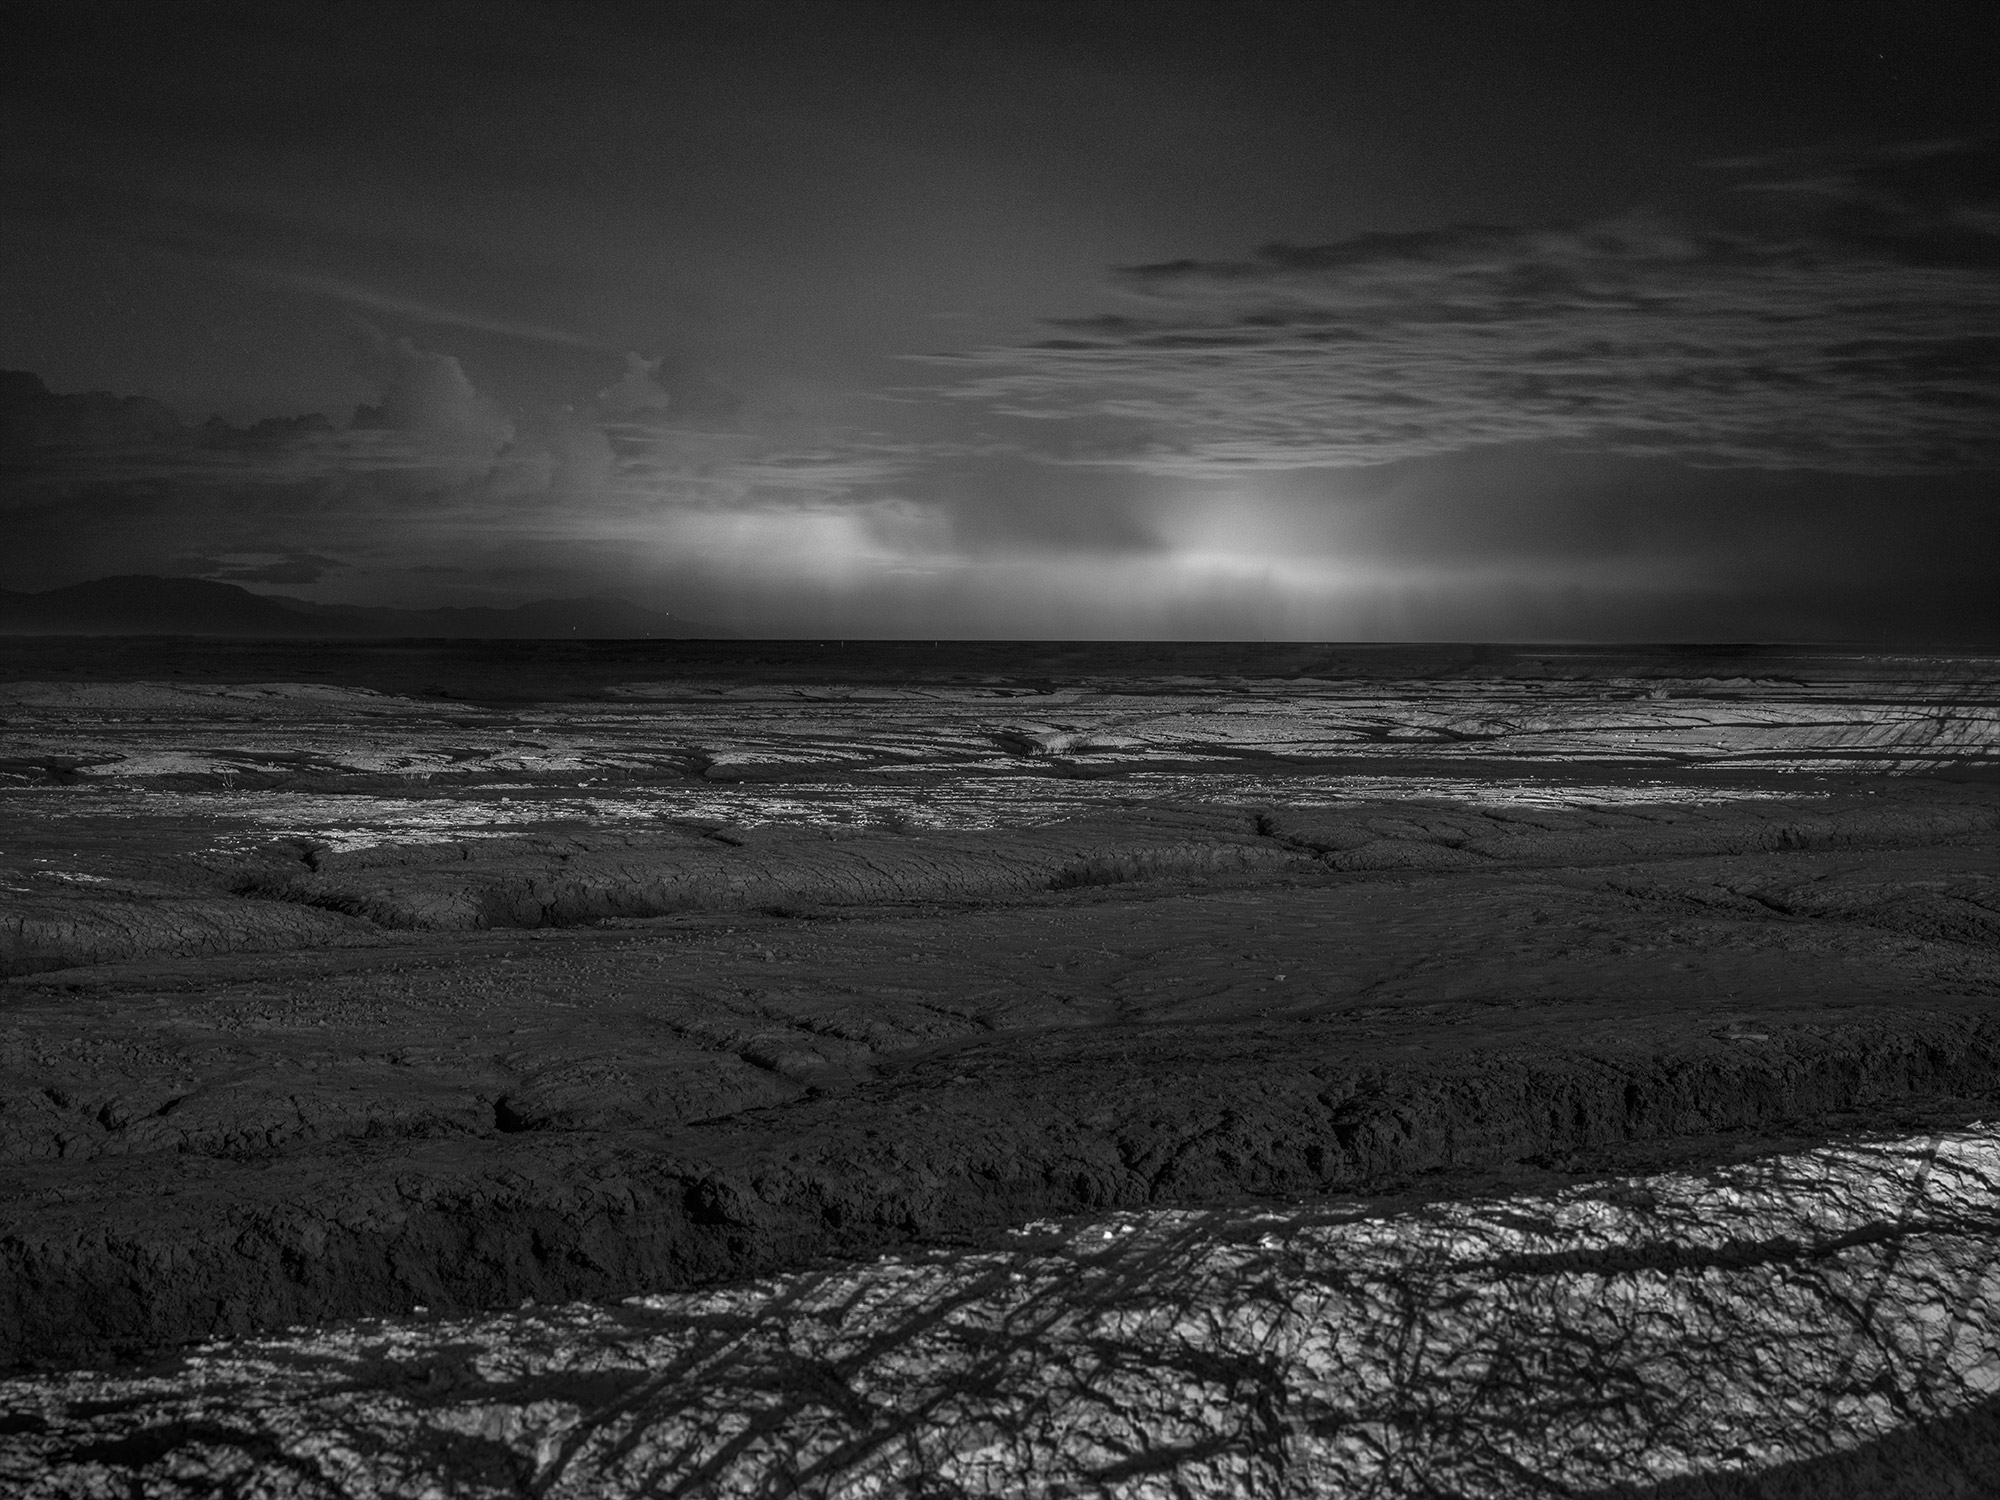 Black and white image of The Salton Sea at night with duststorm in background.